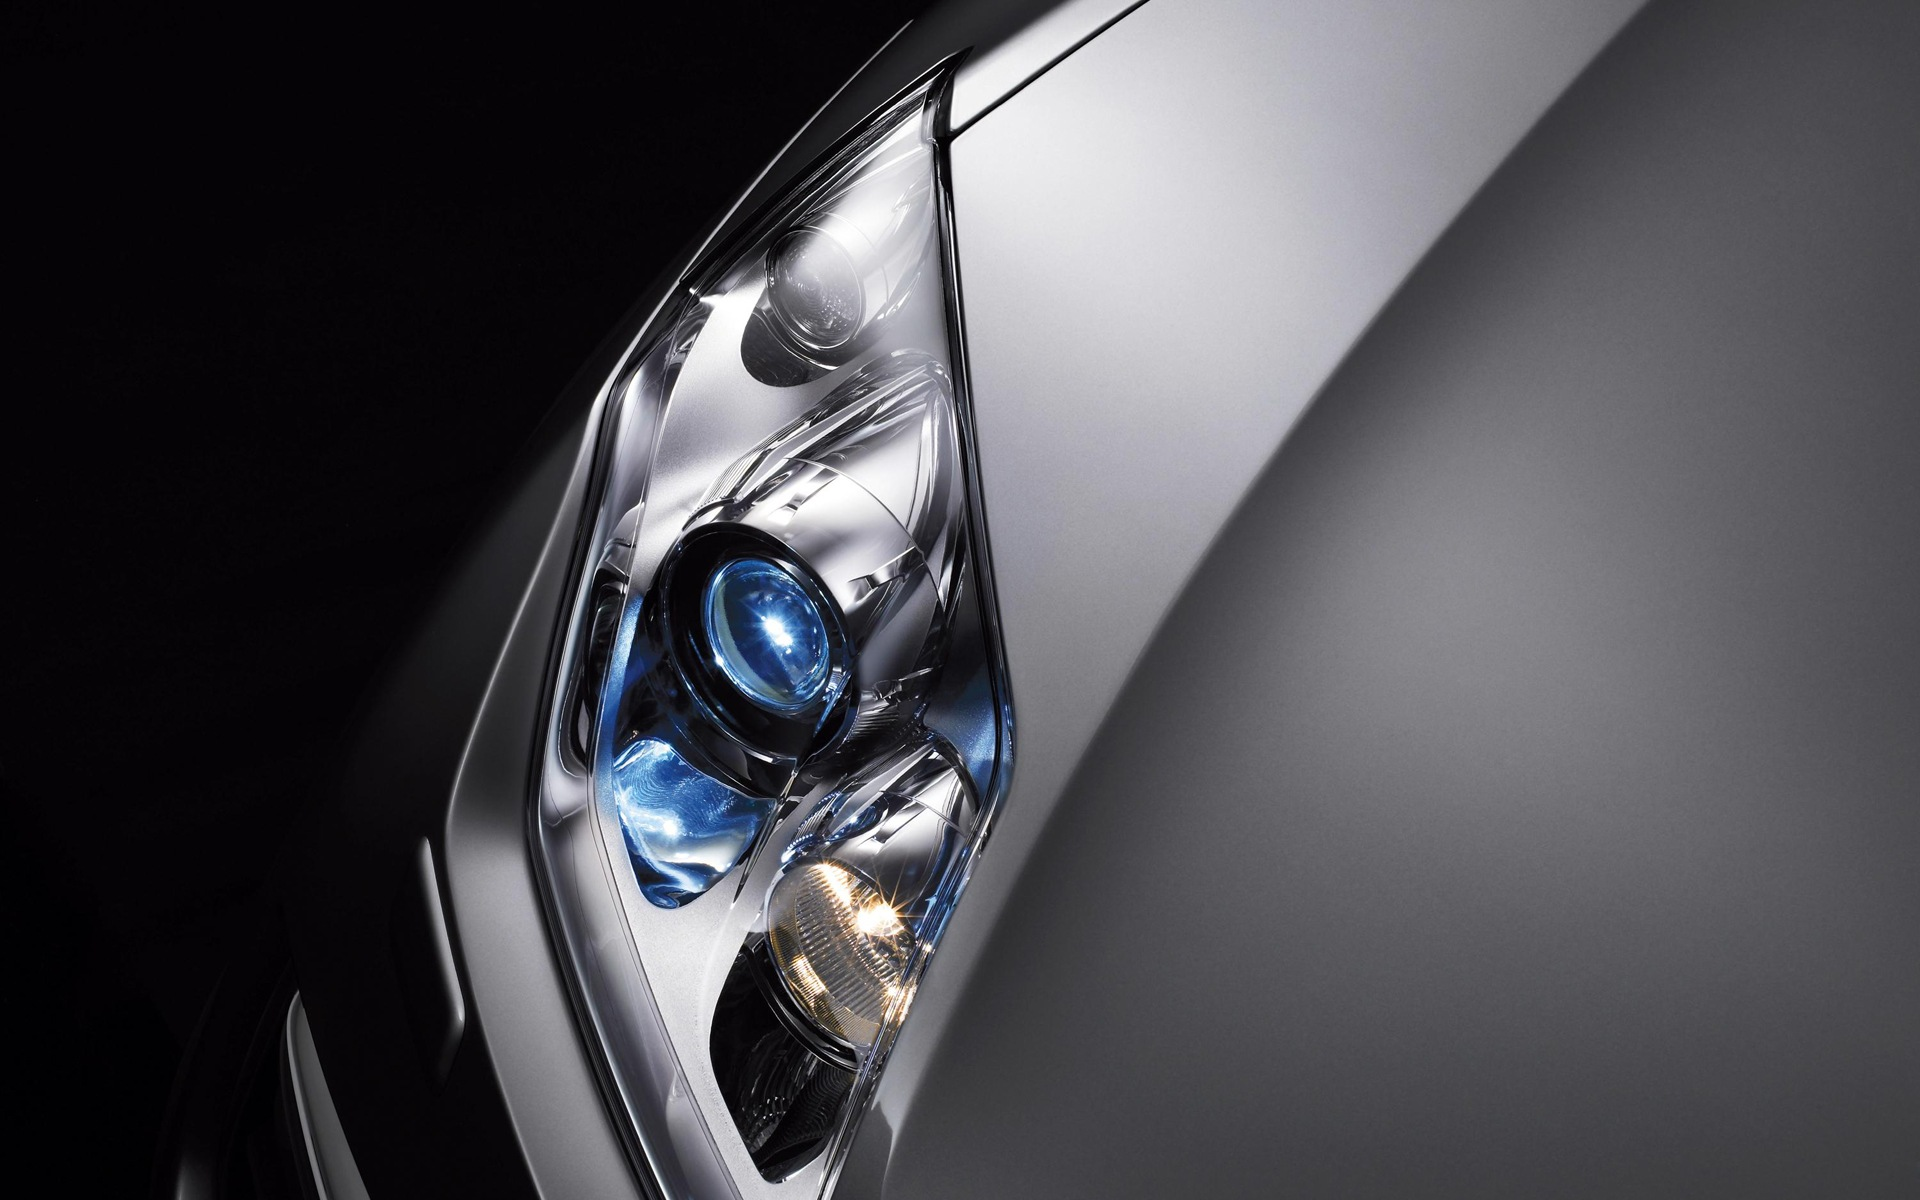 Free Photo Close Up Of Car Auto Headlight Vehicle Free Download Jooinn